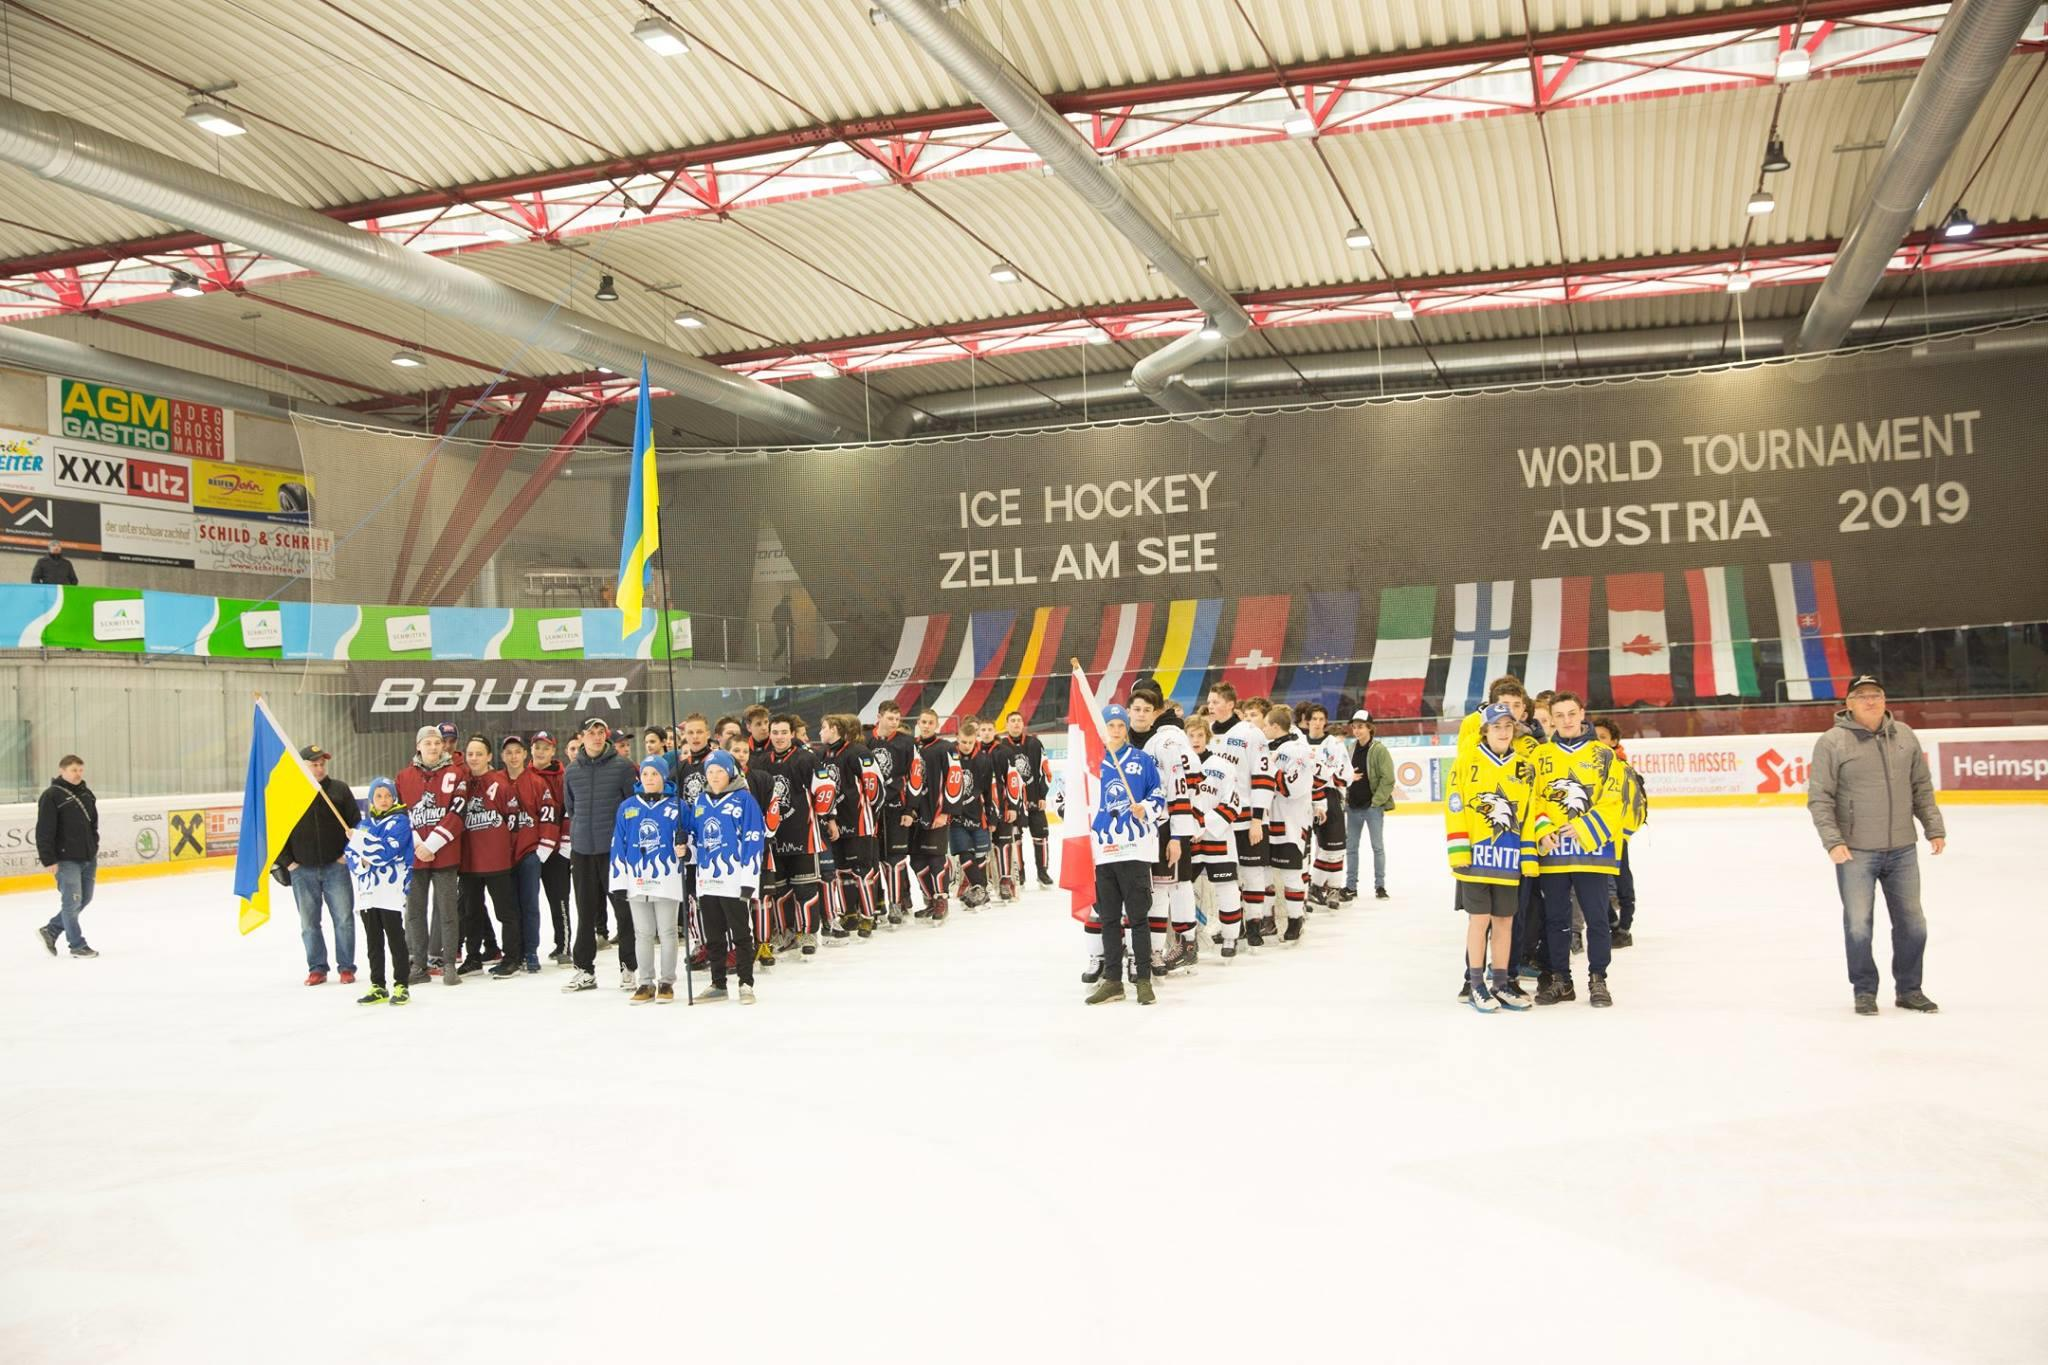 Icehockey World Tournament 2019 - 10/04/2020